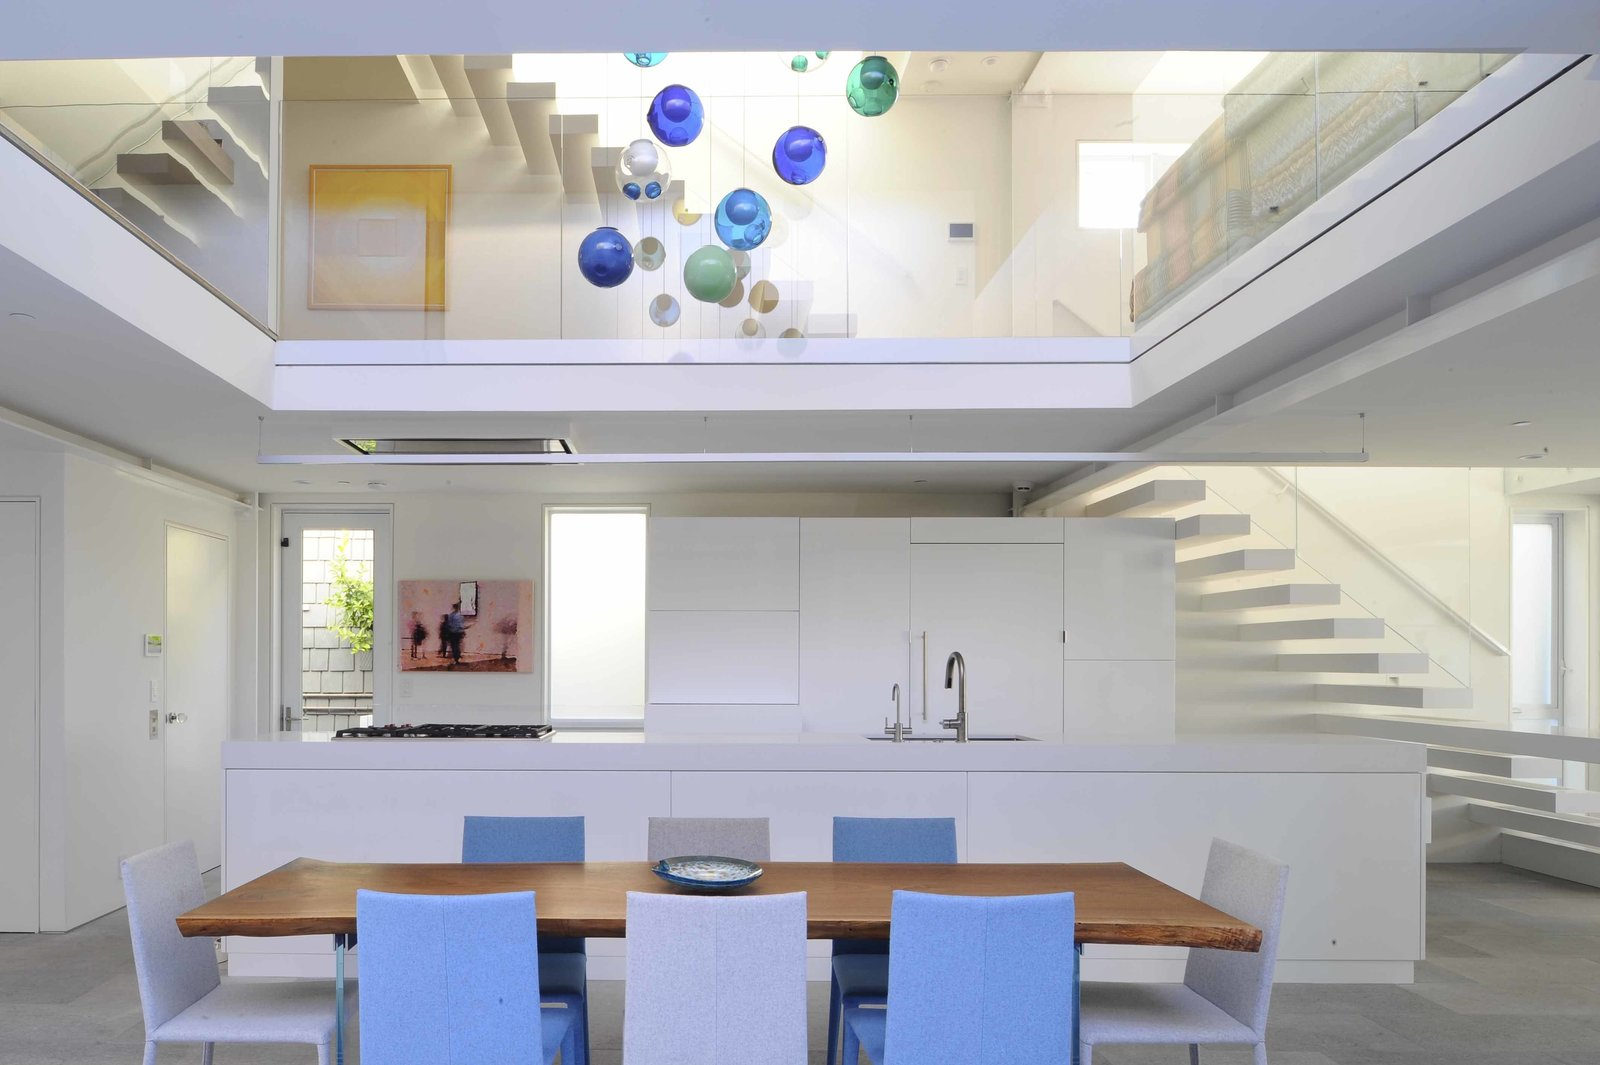 Kitchen, Pendant, White, Limestone, Quartzite, Ceiling, Refrigerator, Microwave, Dishwasher, Wine Cooler, Range, Range Hood, and Undermount The all-white kitchen is open to the upper level. One tread of the stairs extends out to become a countertop and the live-edge dining room table is surrounded by blue and grey chairs that are part of a palette inspired by the beach setting.  Best Kitchen Refrigerator Undermount Pendant Wine Cooler White Photos from Beach House